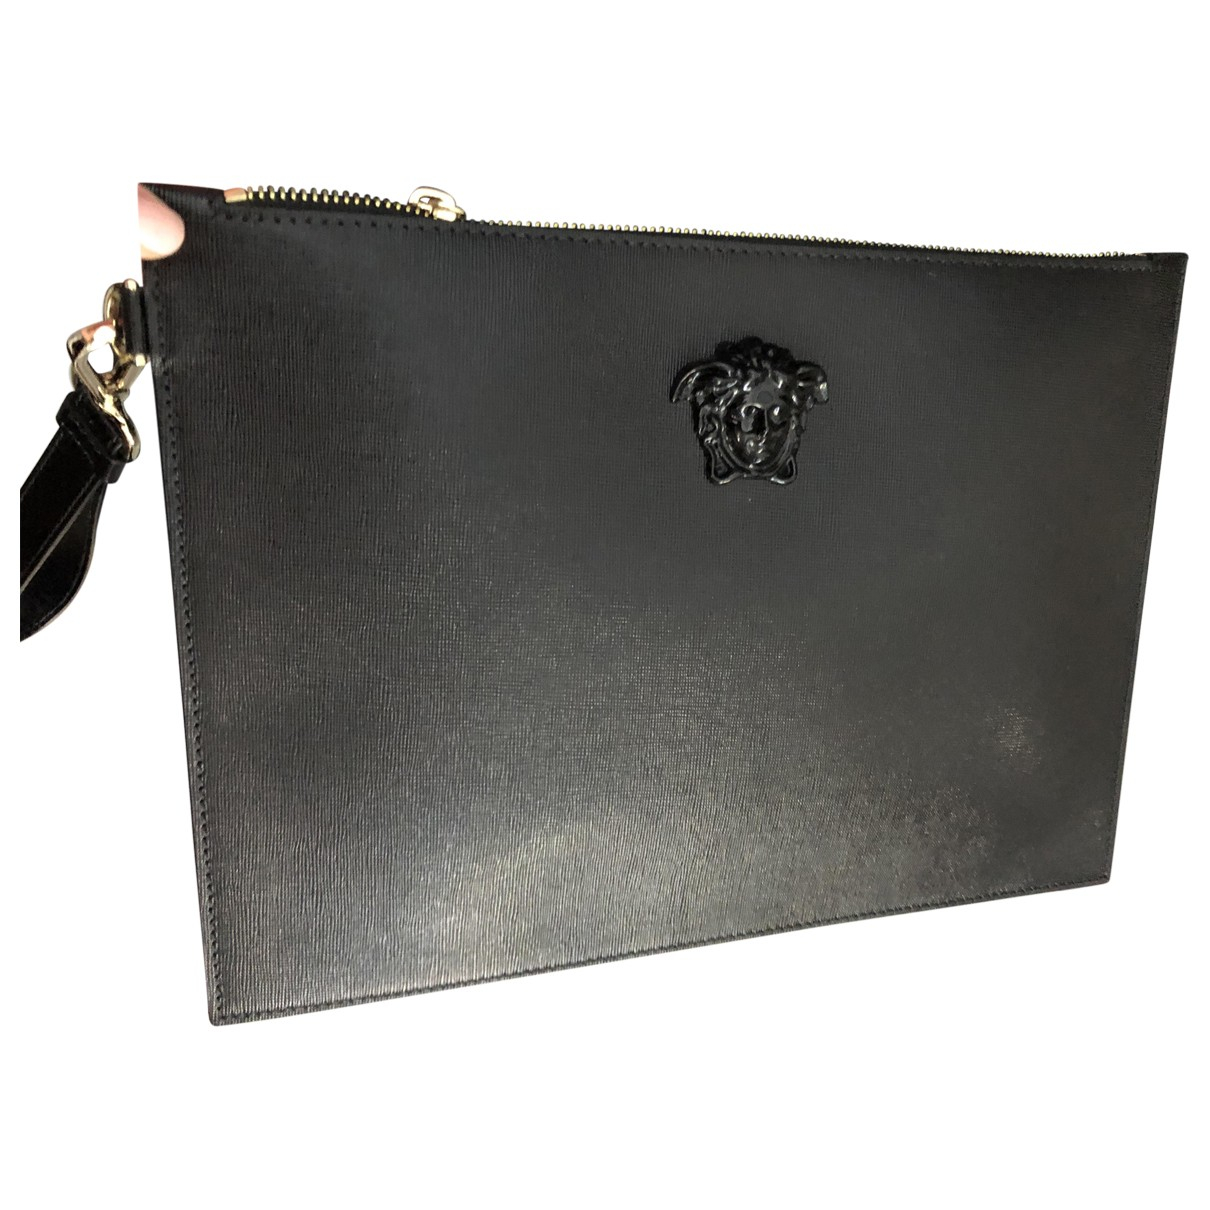 Versace \N Black Leather Clutch bag for Women \N